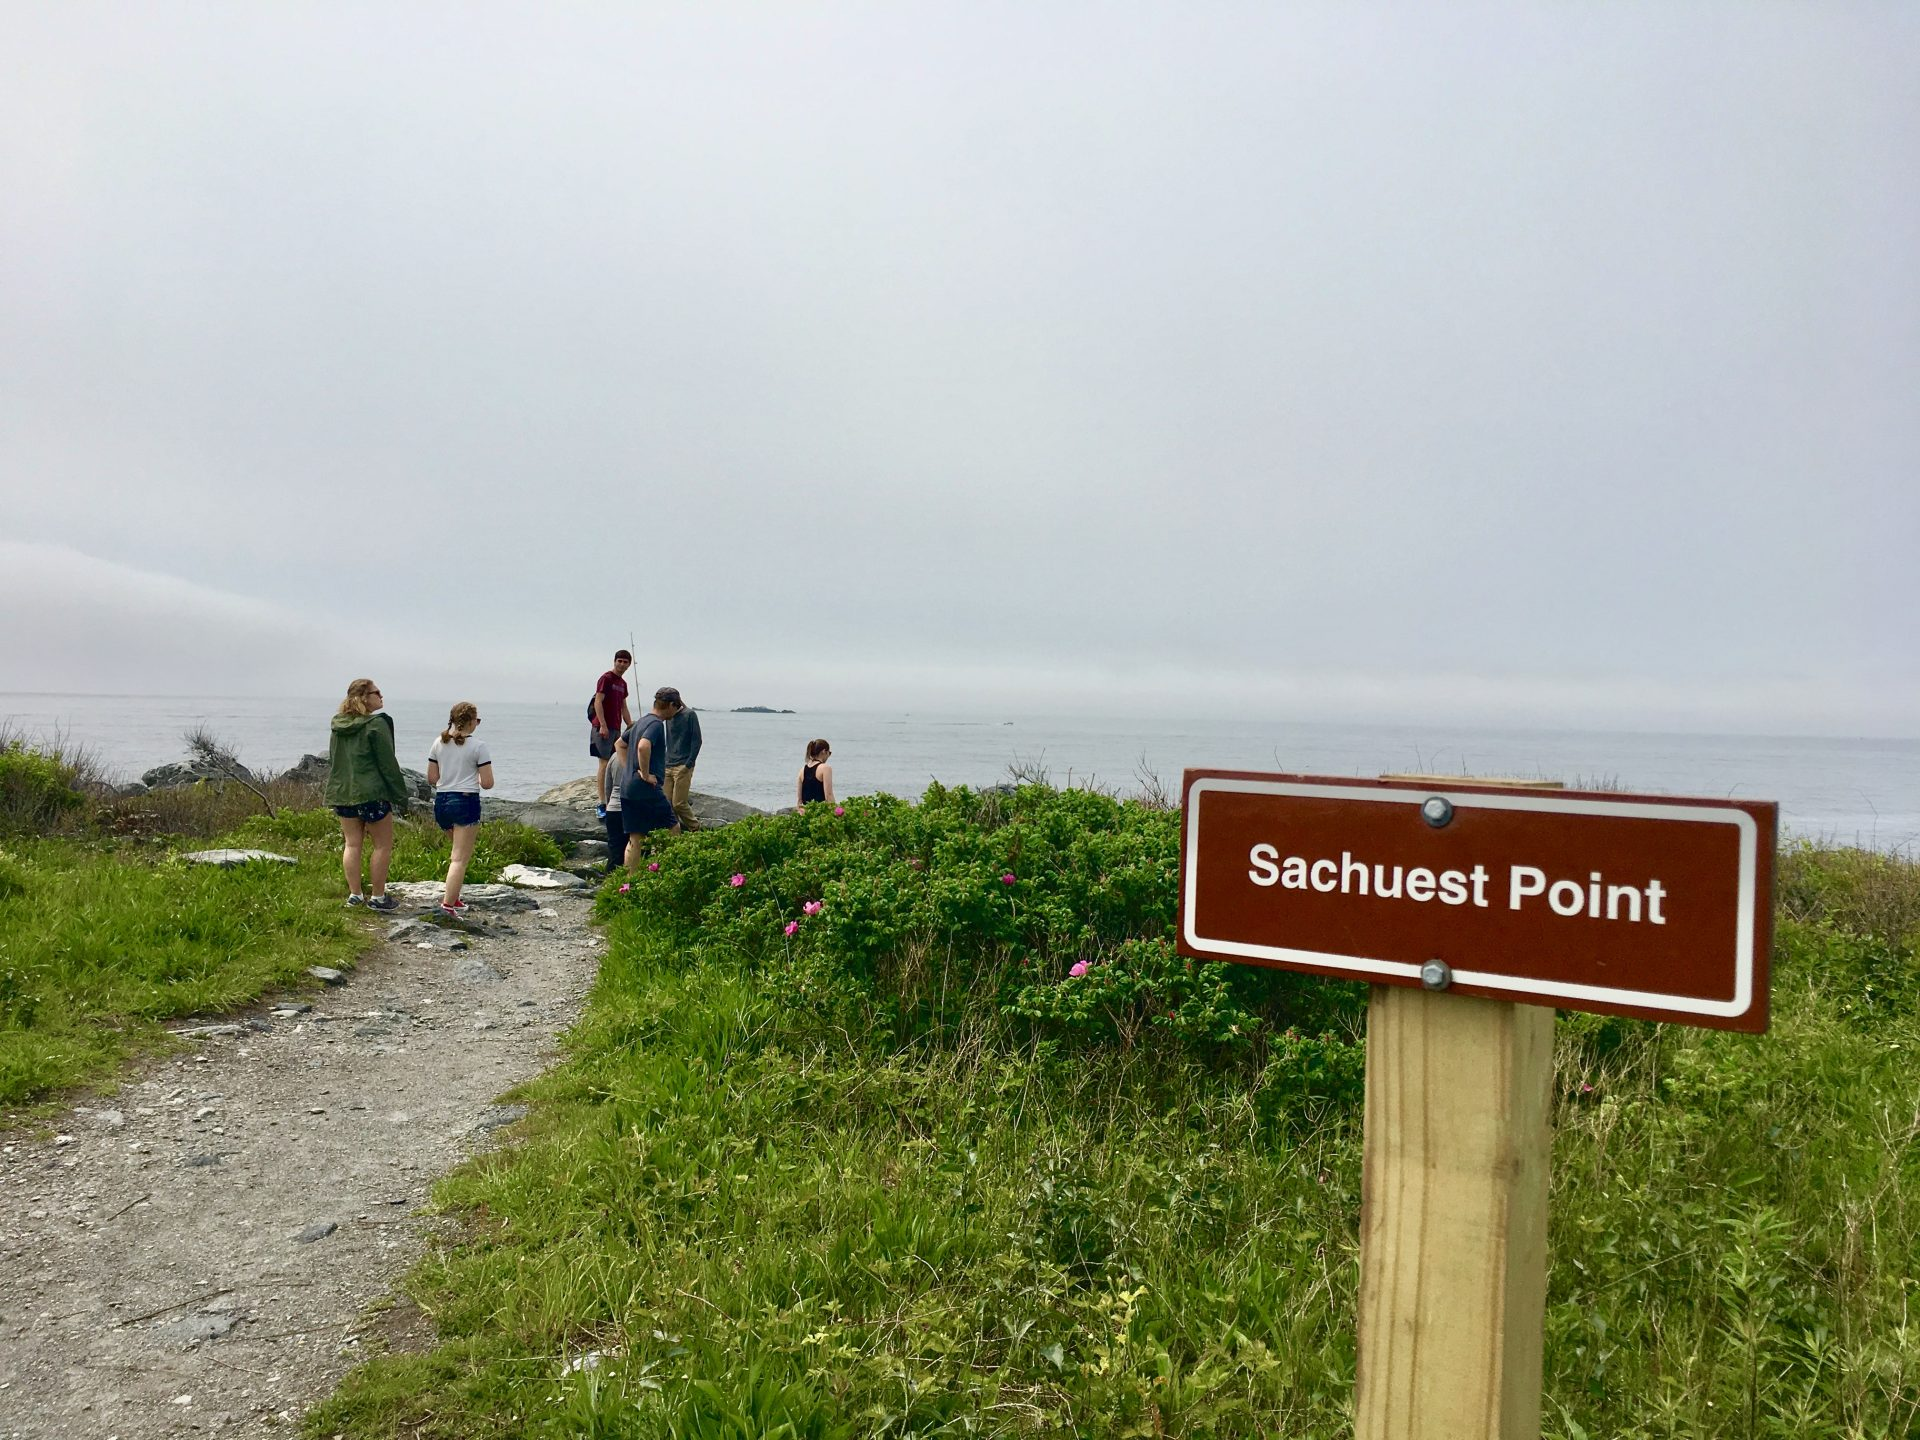 Sachuest point national wildlife refuge